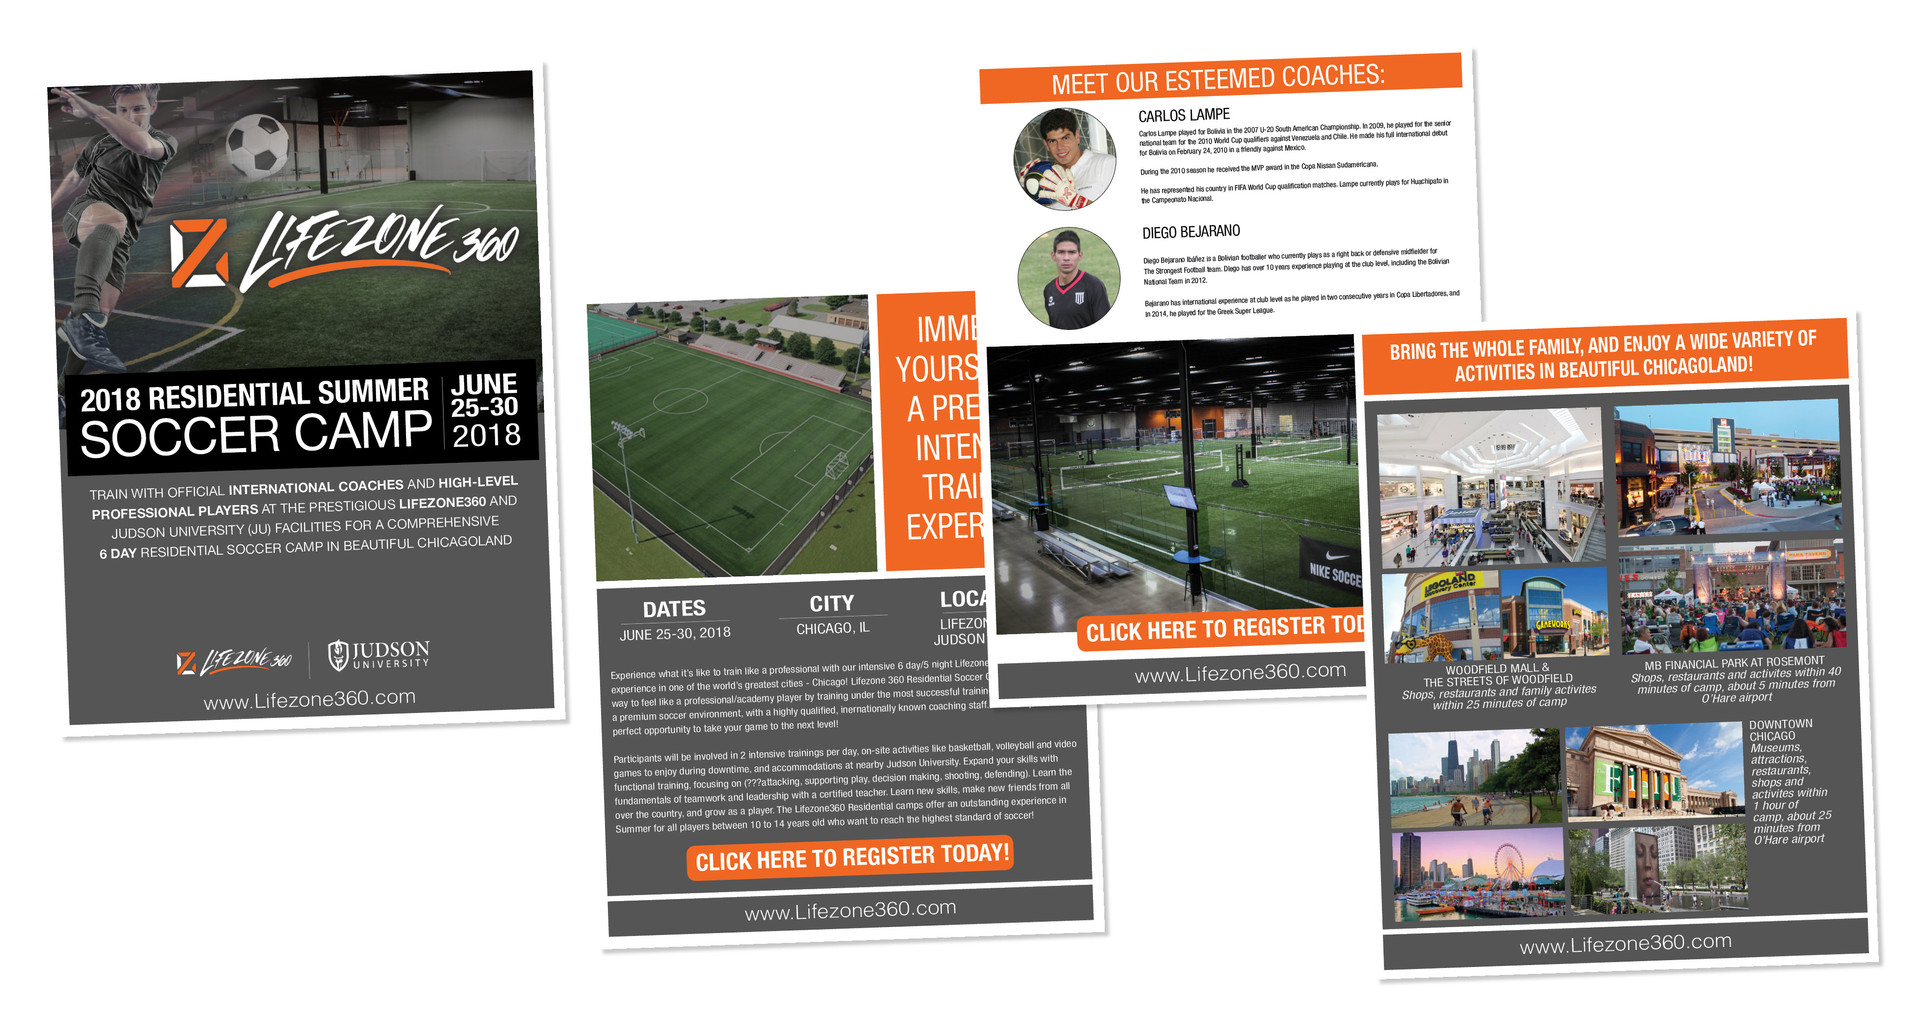 Lifezone 360 Soccer Camp Brochure